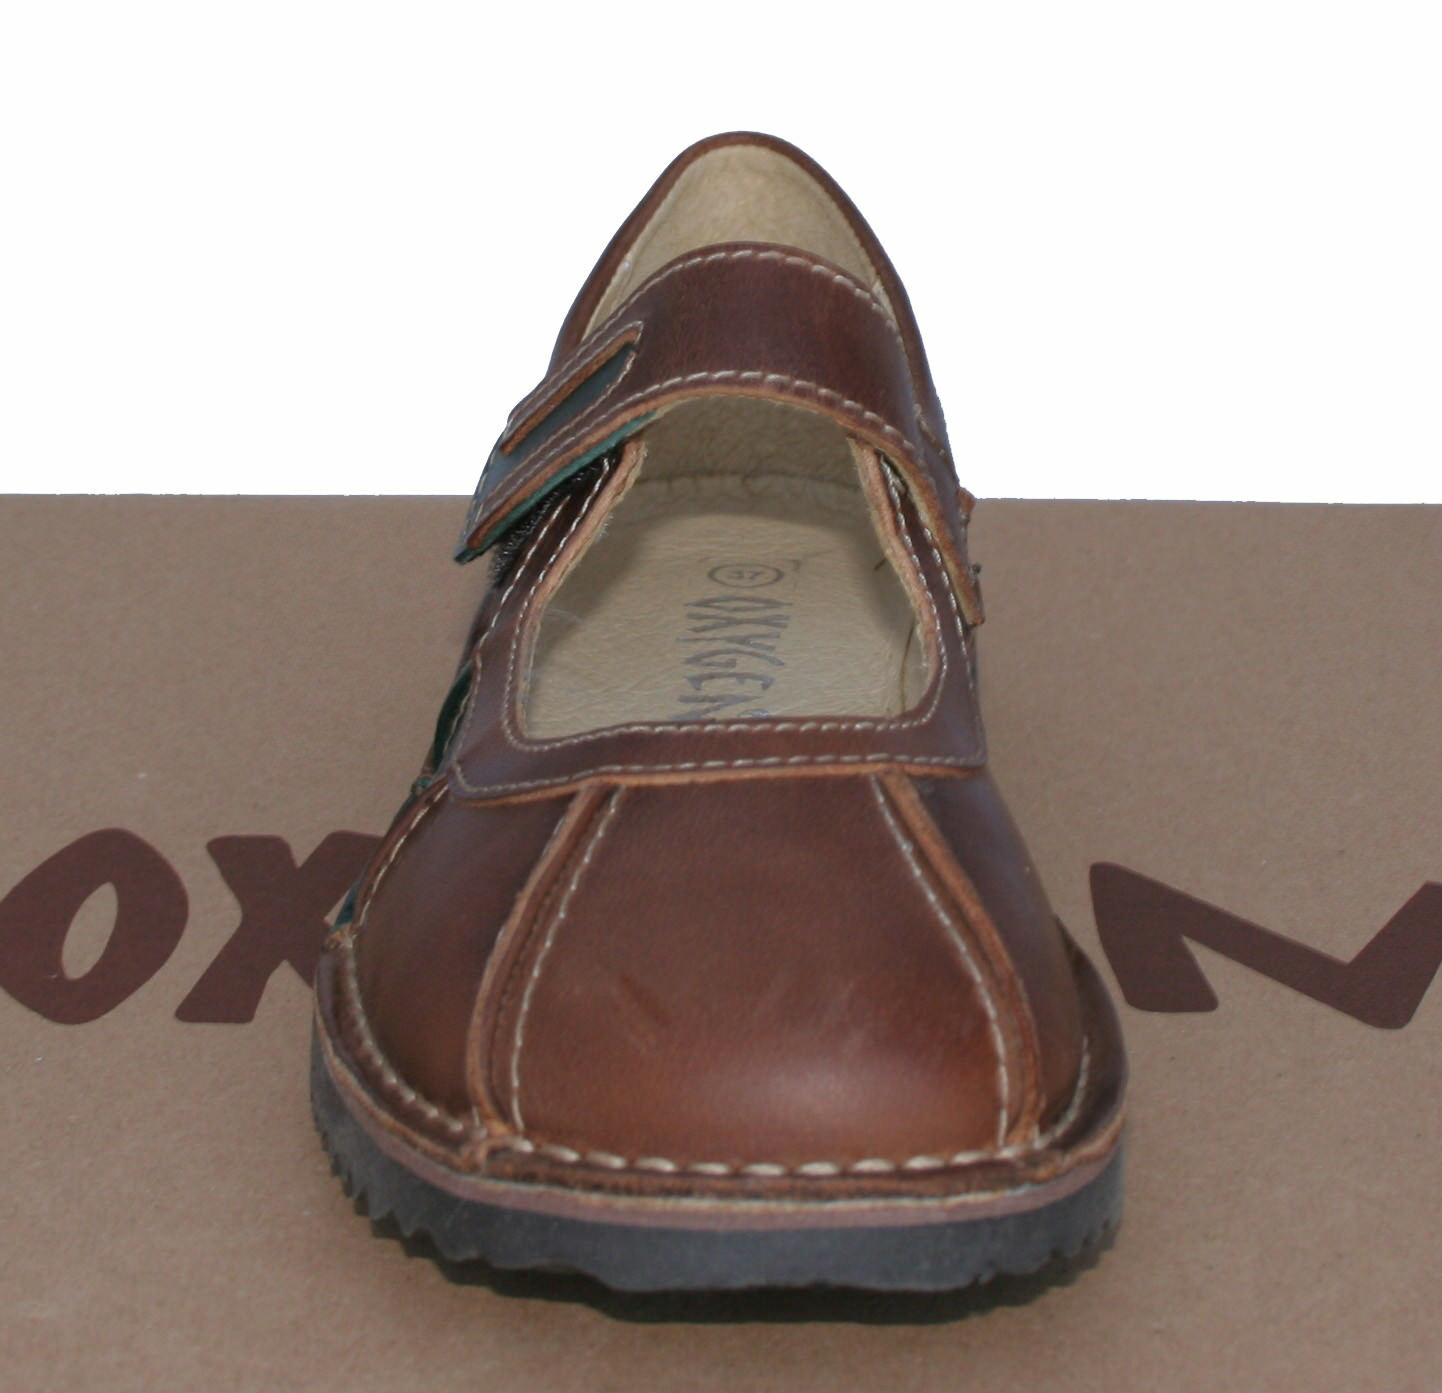 Oxygen Stitch Down Mary Jane chaussures Rostock Tan Tan Tan Tailles 38 & 41 (UK 5 & 7.5) 6c6e3e